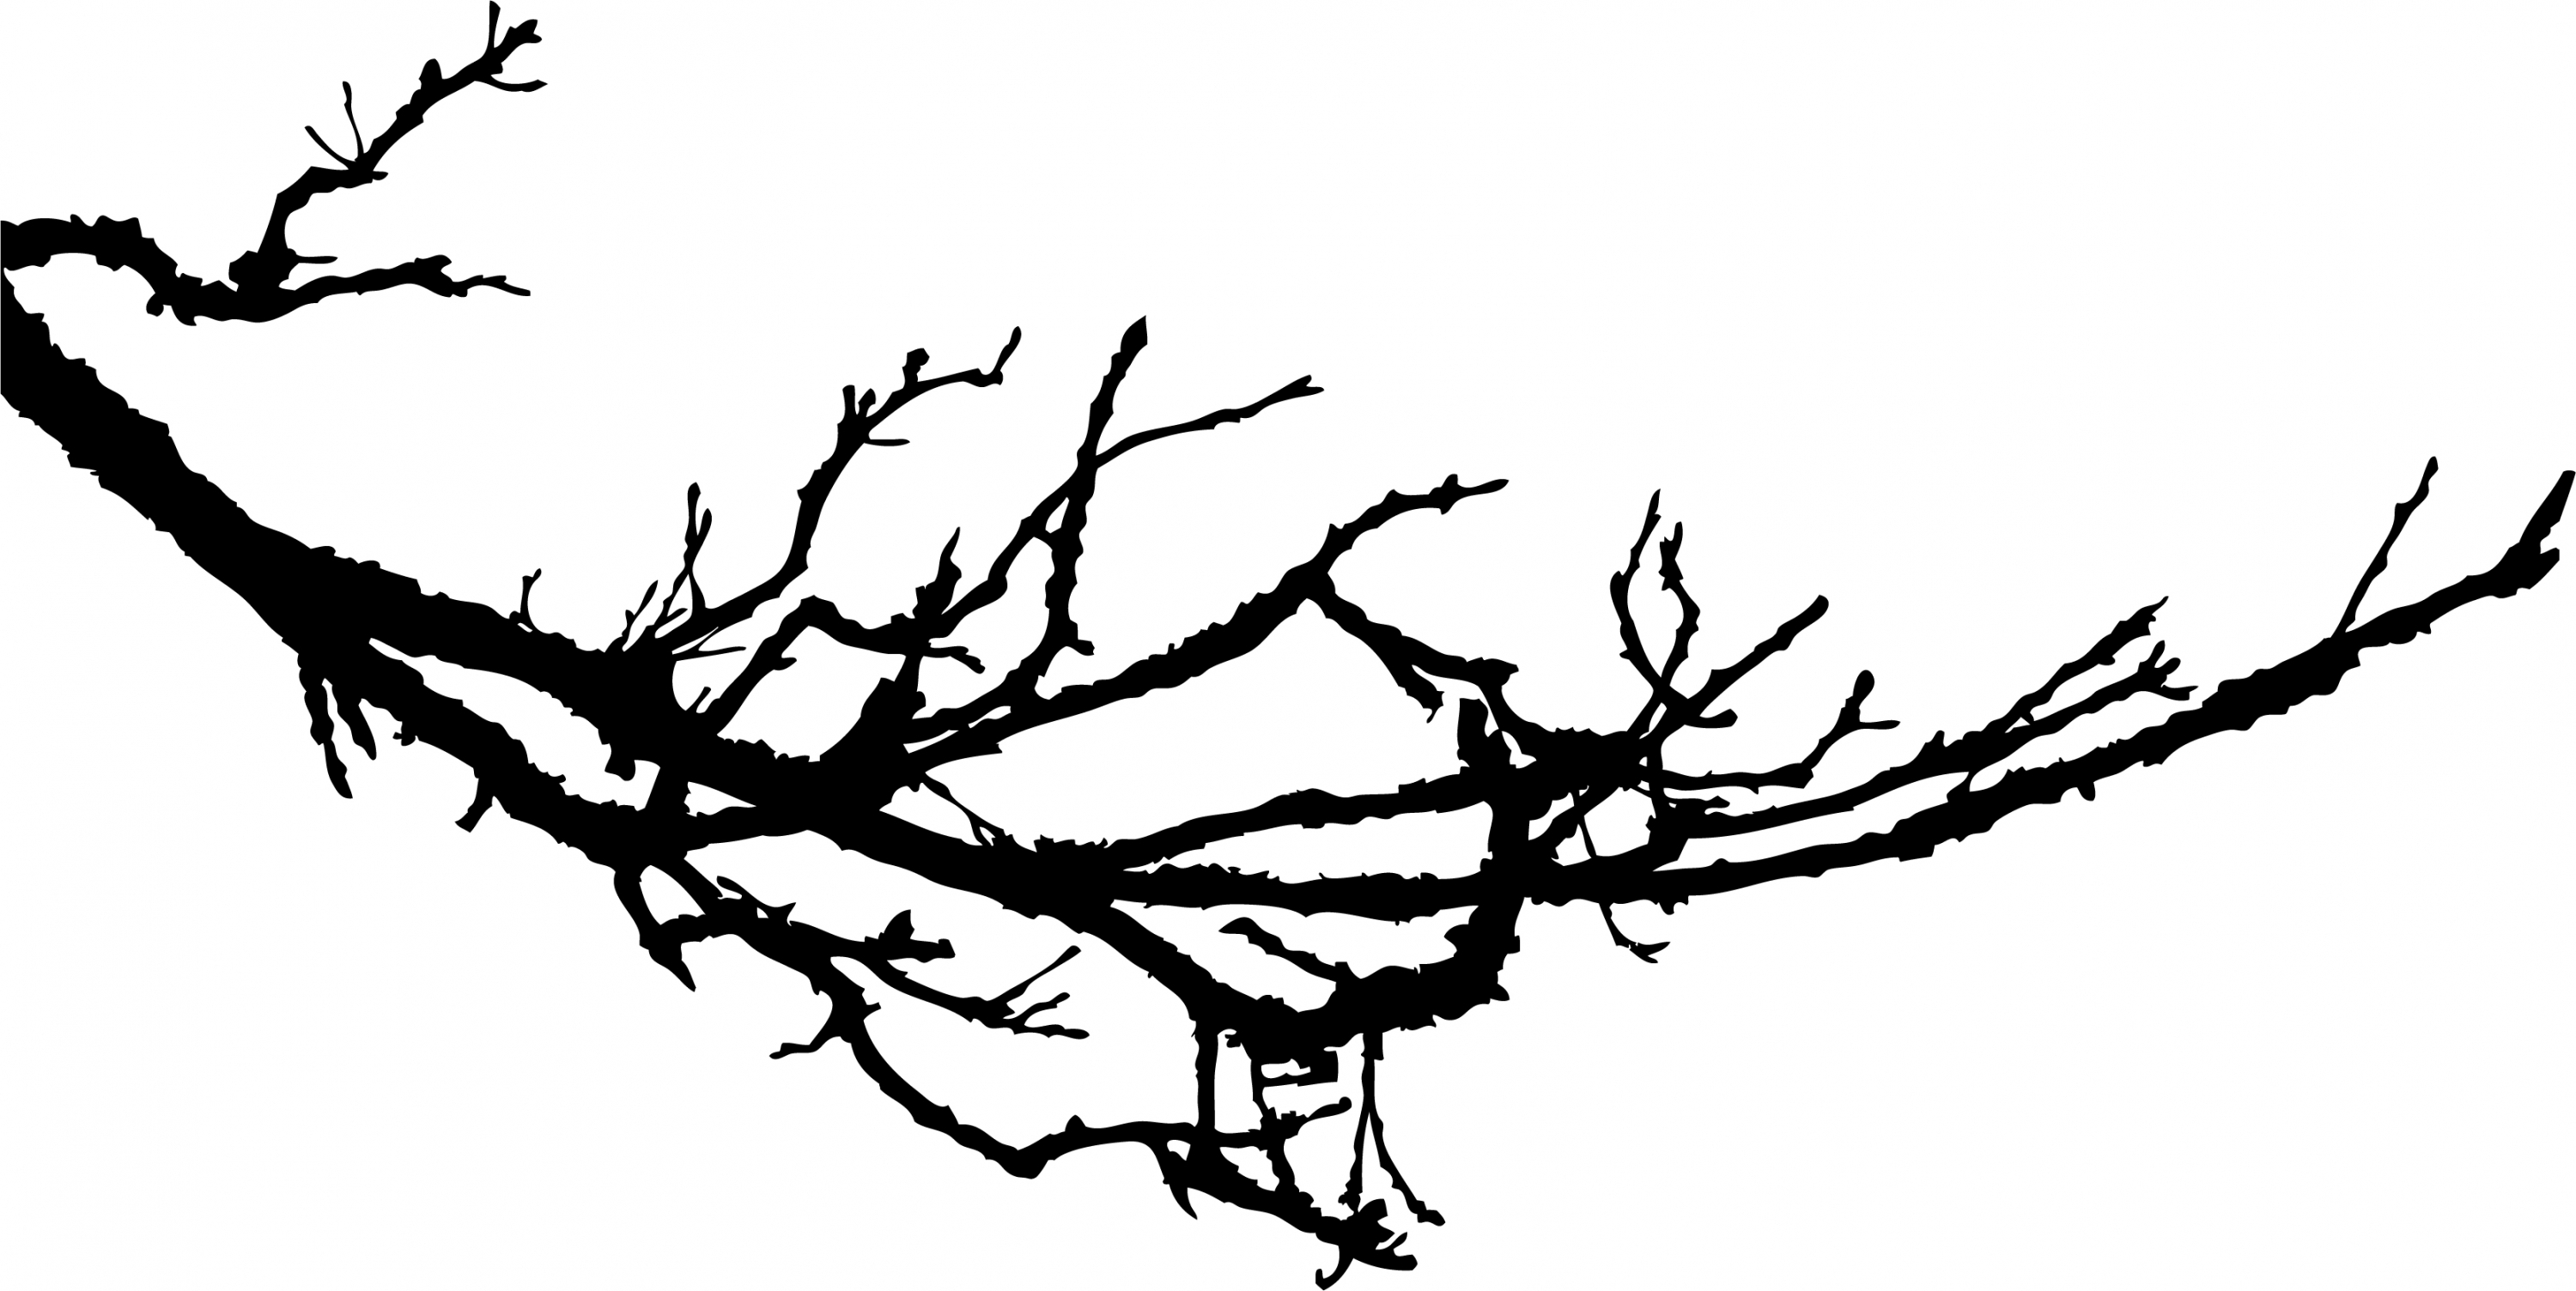 branch drawing tree drawing with branches tree drawing with branches drawing branch